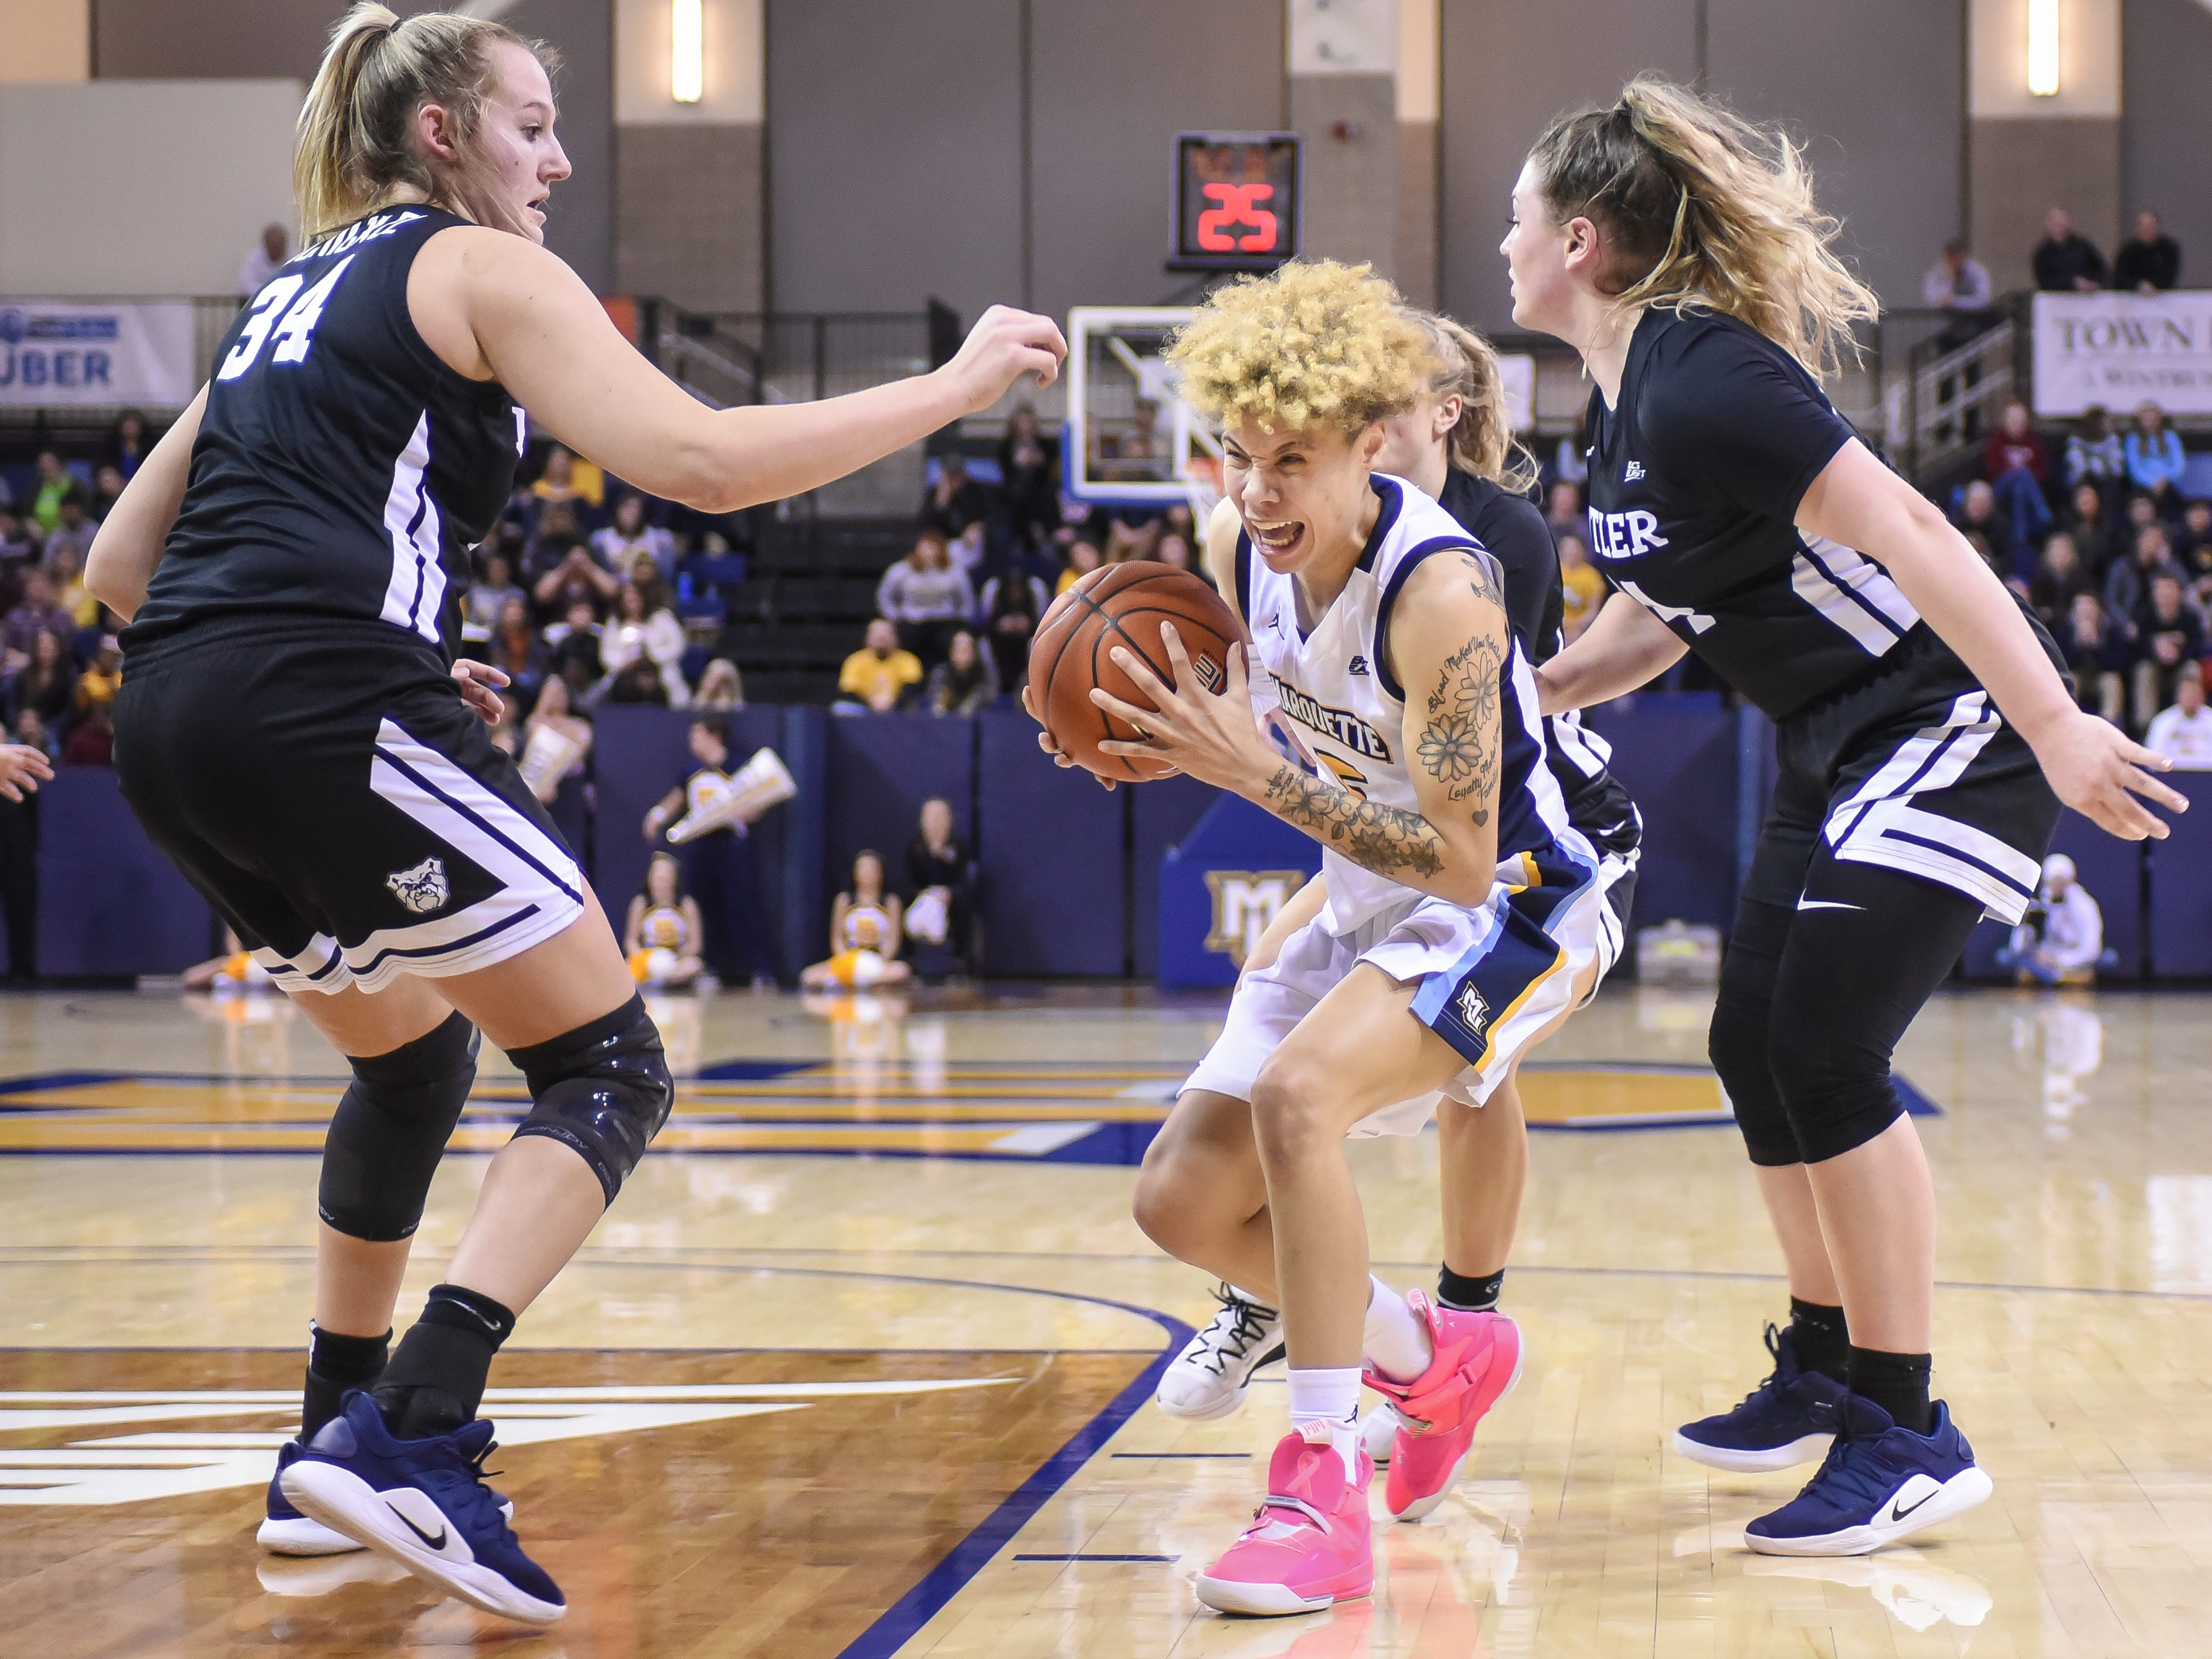 Marquette guard Natisha Hiedeman changes direction while driving between Butler forward/center Tori Schickel (left) and guard Kristen Spolyar in a Big East women's college basketball game Friday, February 22, 2019, at the Al McGuire Center.